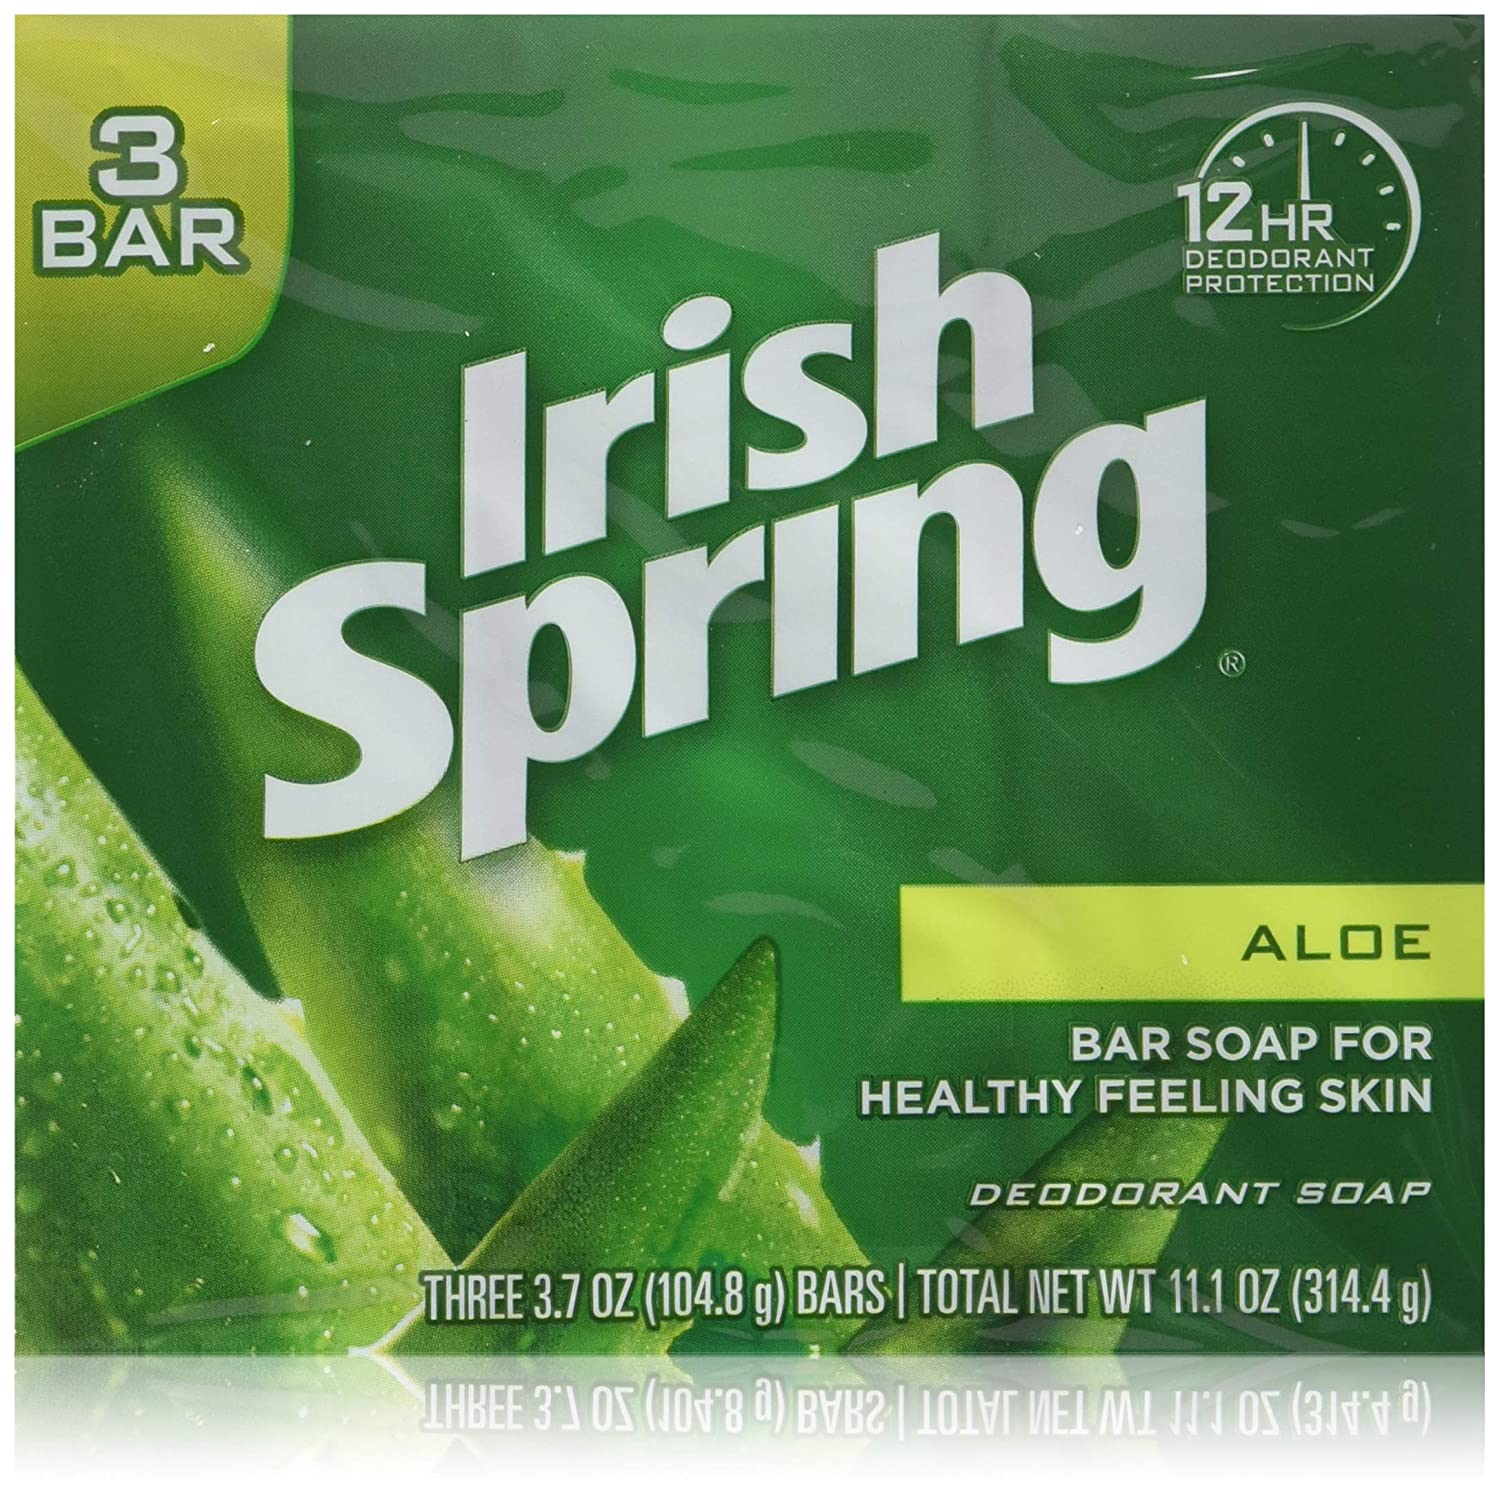 Irish Springs Aloe Bath Soap, 3 75 Oz  Bars, (2) 3 Bar Packages